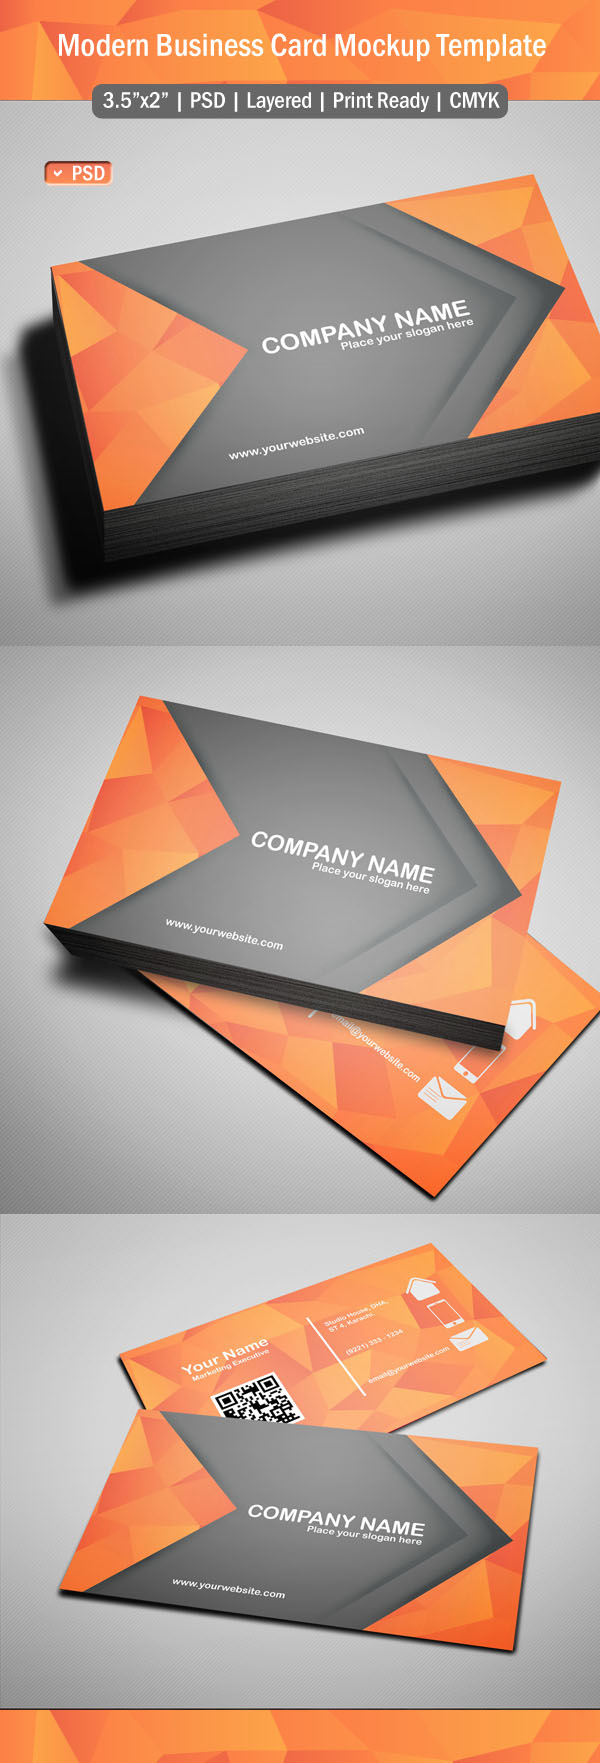 Free psd files download 25 ui design photoshop psd resources free modern business card template psd fbccfo Image collections